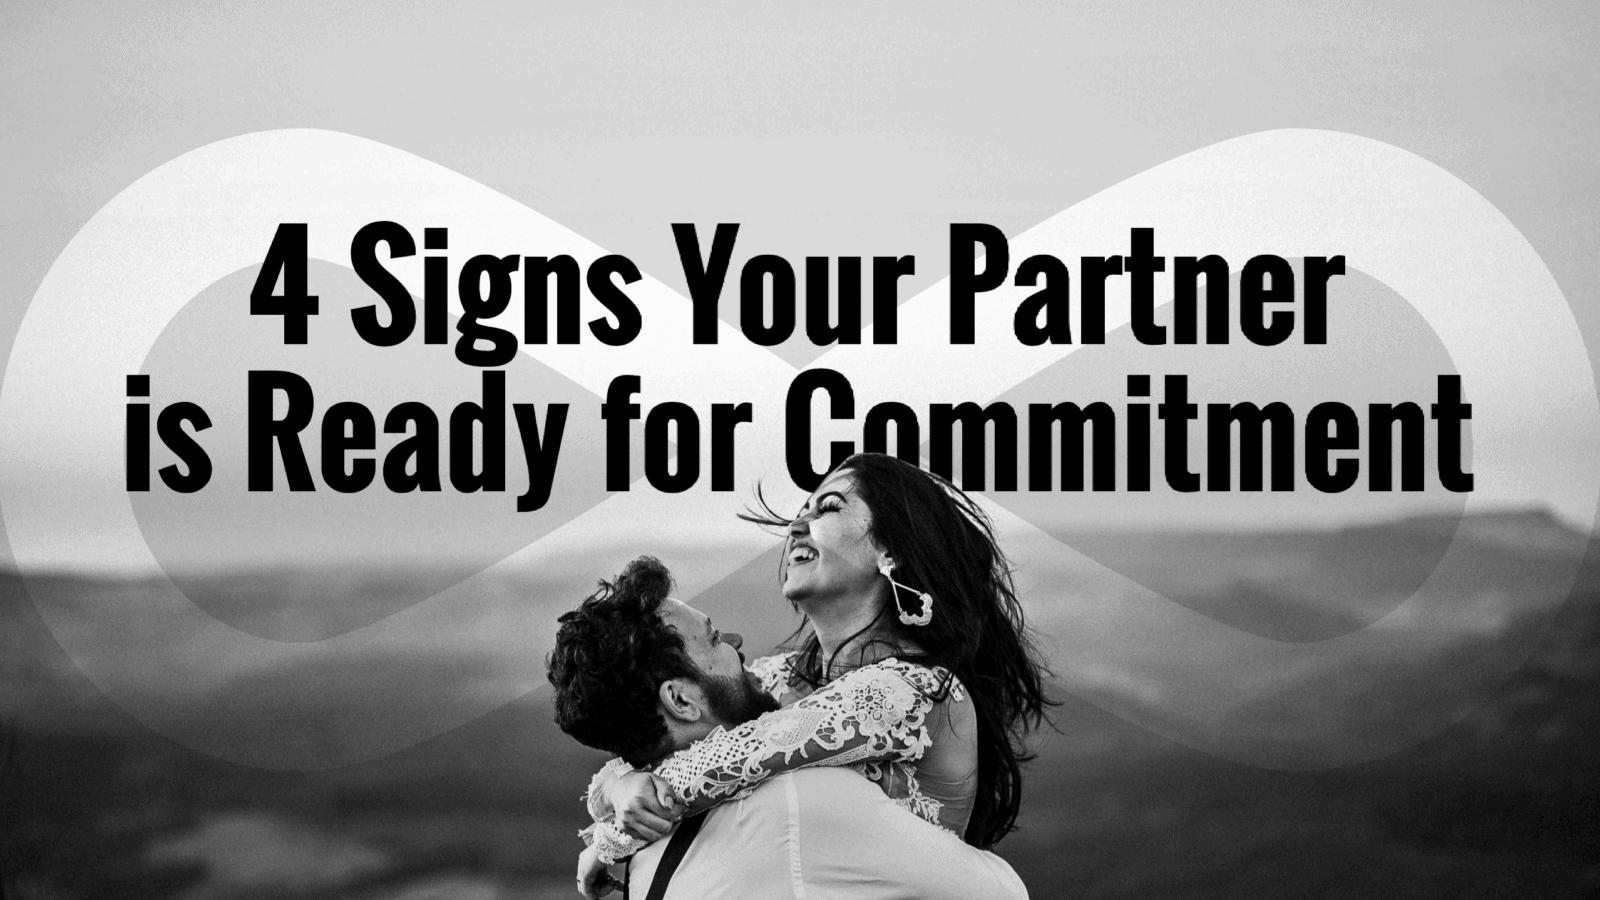 partner is ready for commitment